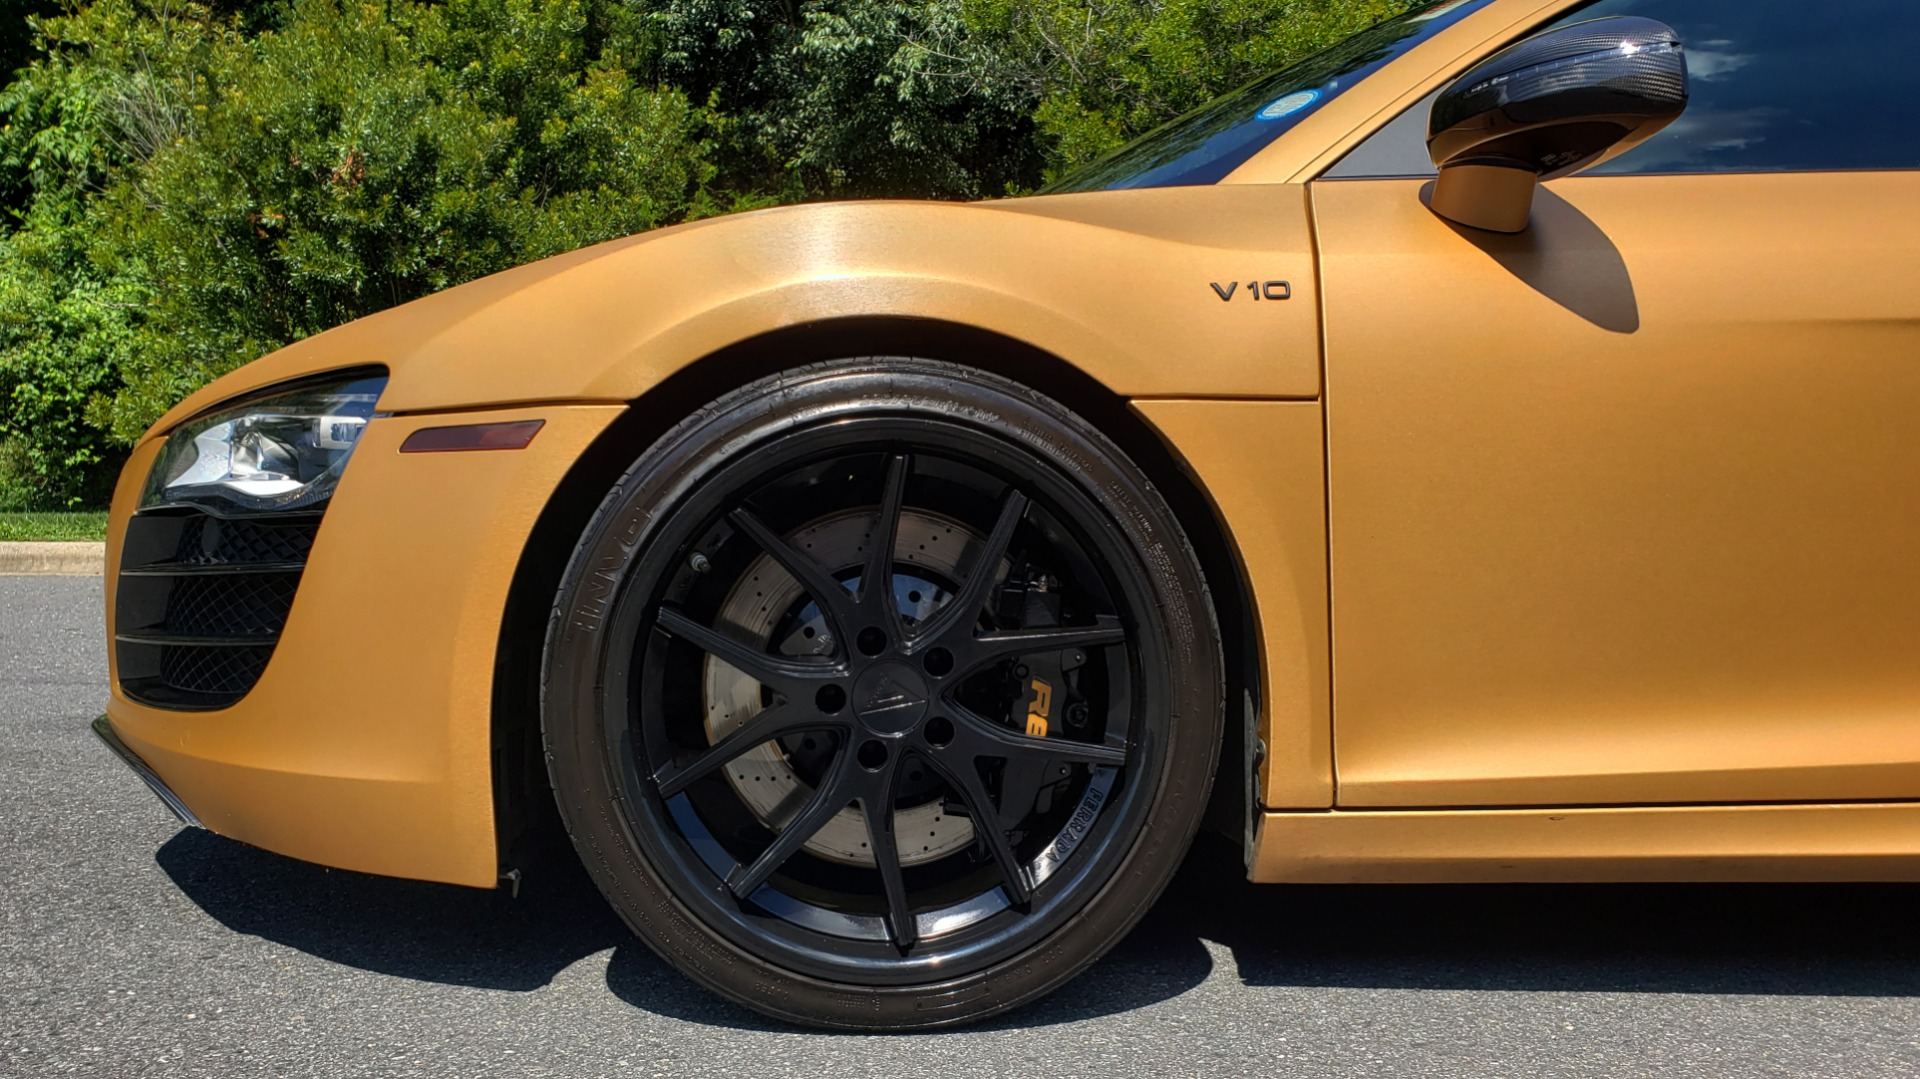 Used 2012 Audi R8 V10 5.2L / CUST WRAP BRUSHED BRONZE / NAV / B&O SOUND / CUST 19IN WHLS for sale $79,999 at Formula Imports in Charlotte NC 28227 64